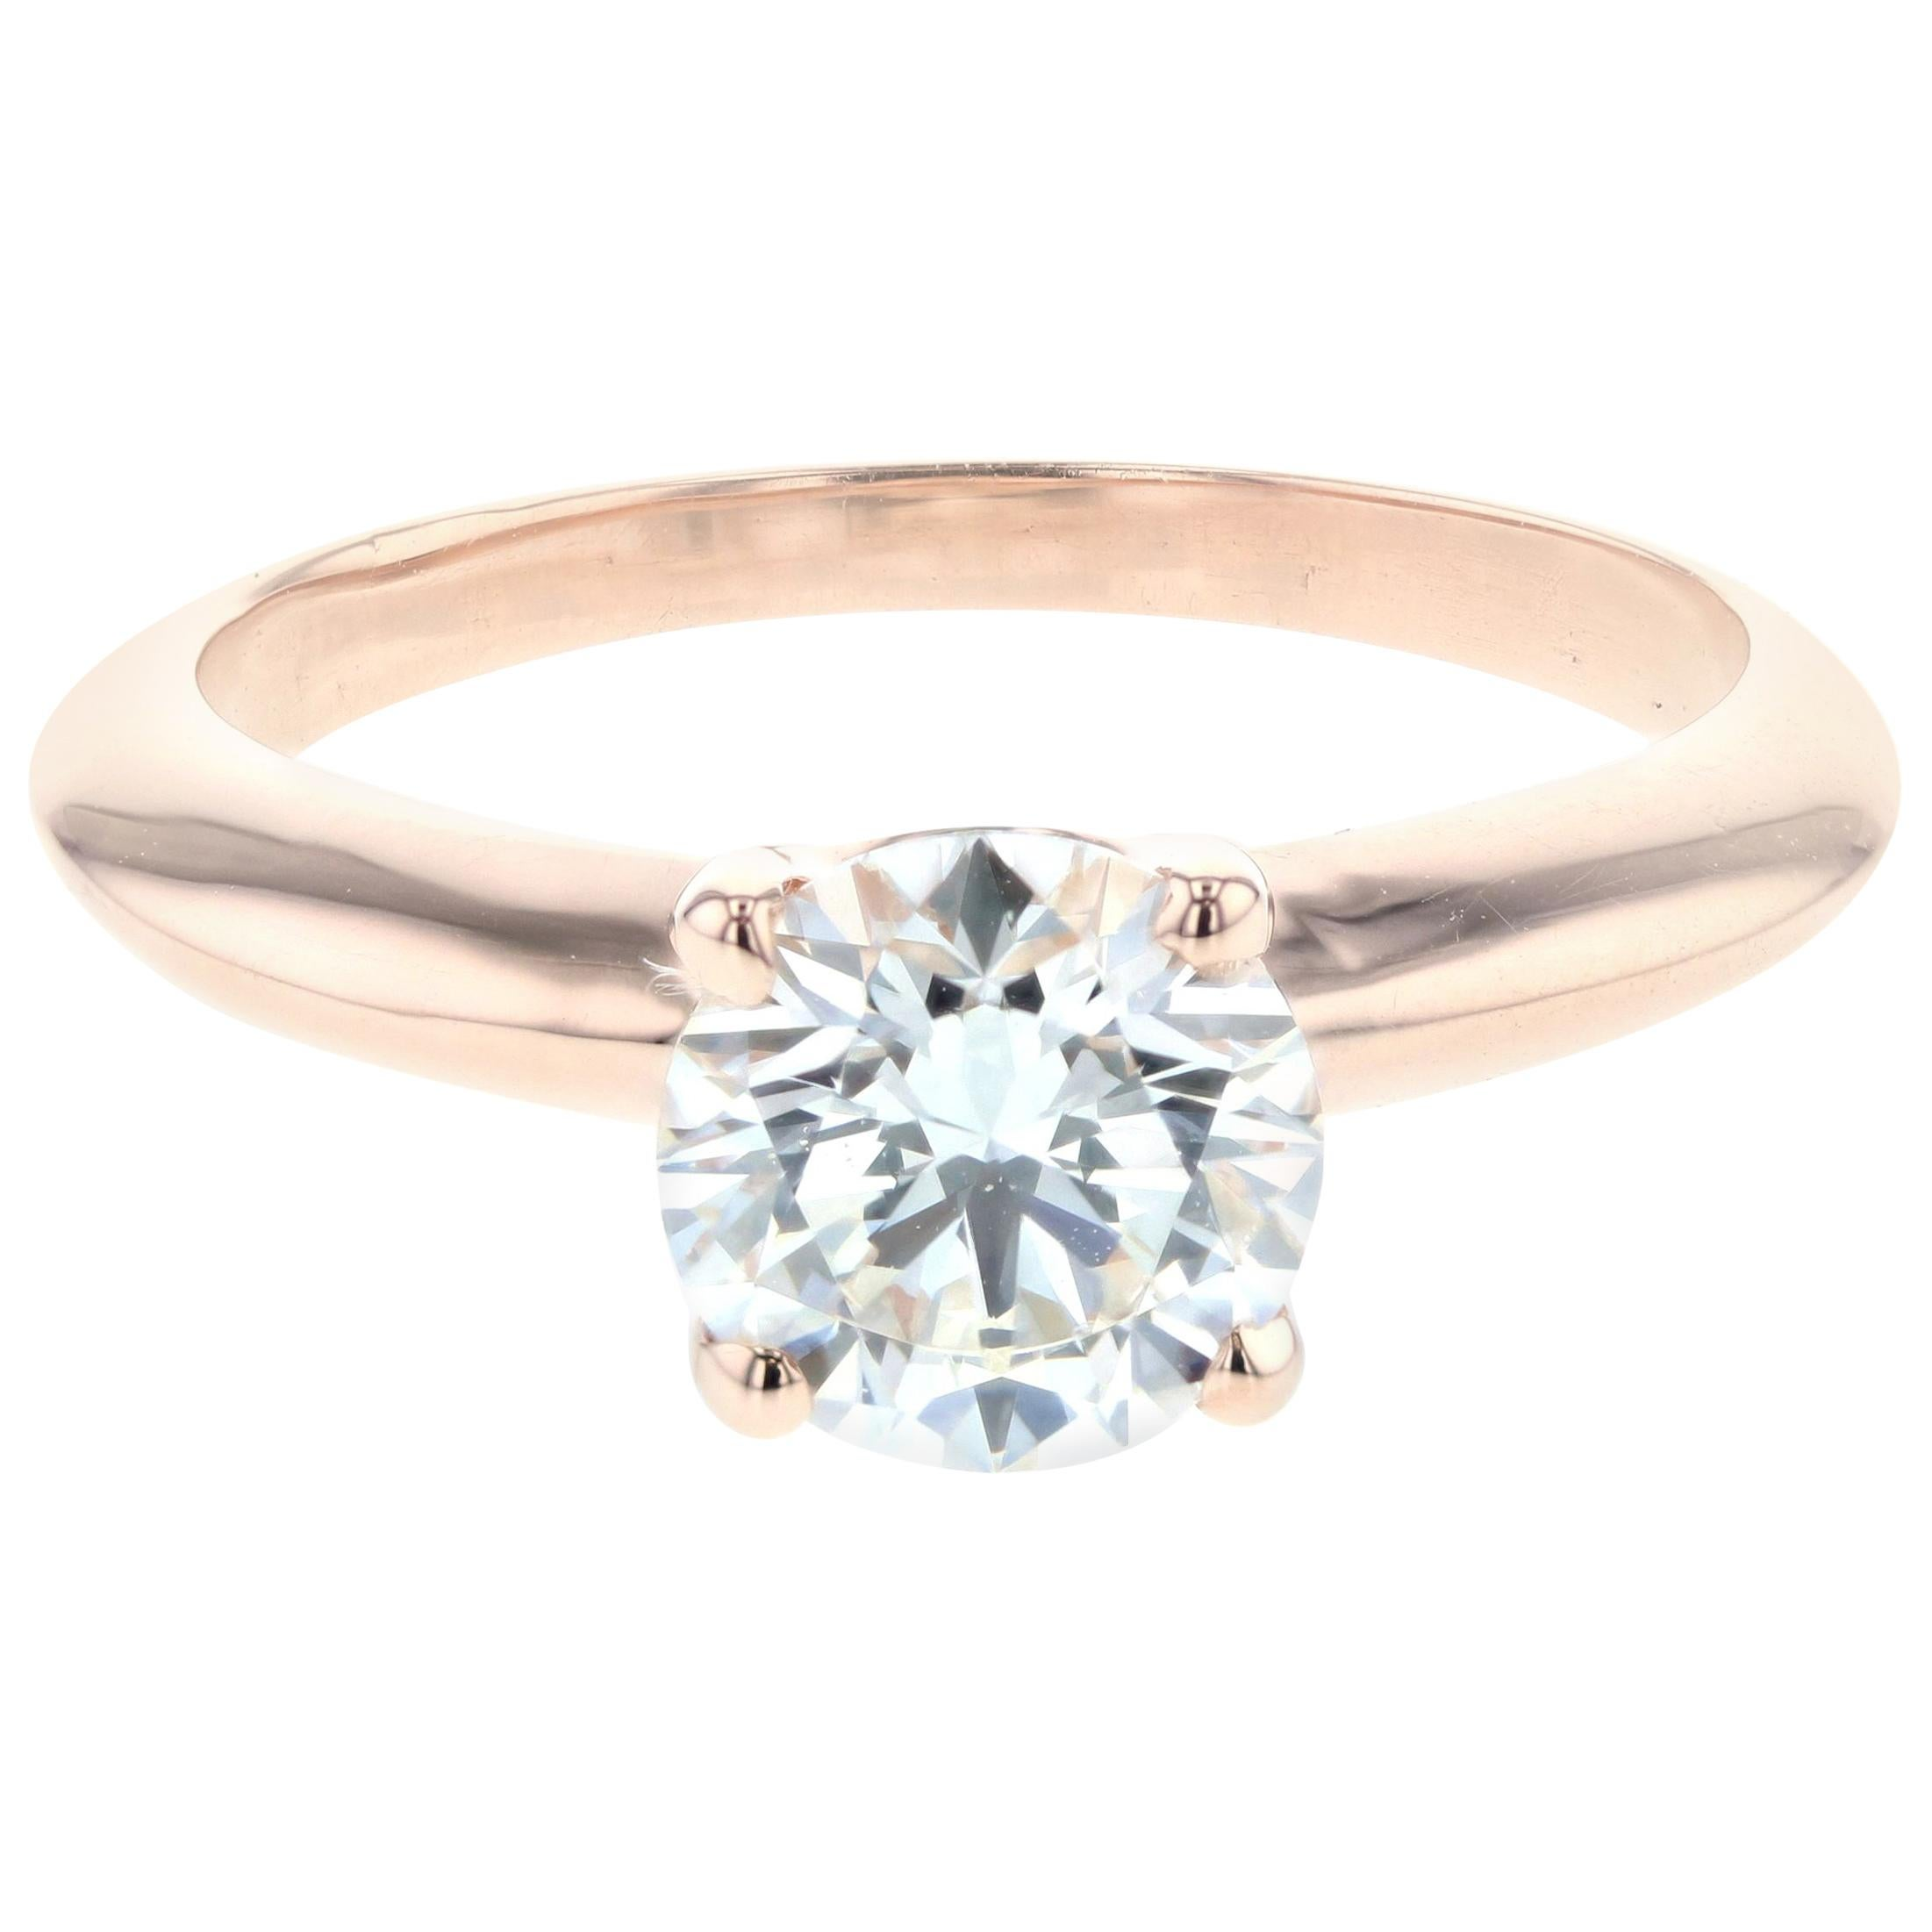 1 Carat Rose Gold Solitaire Diamond Engagement Ring 'Certified'